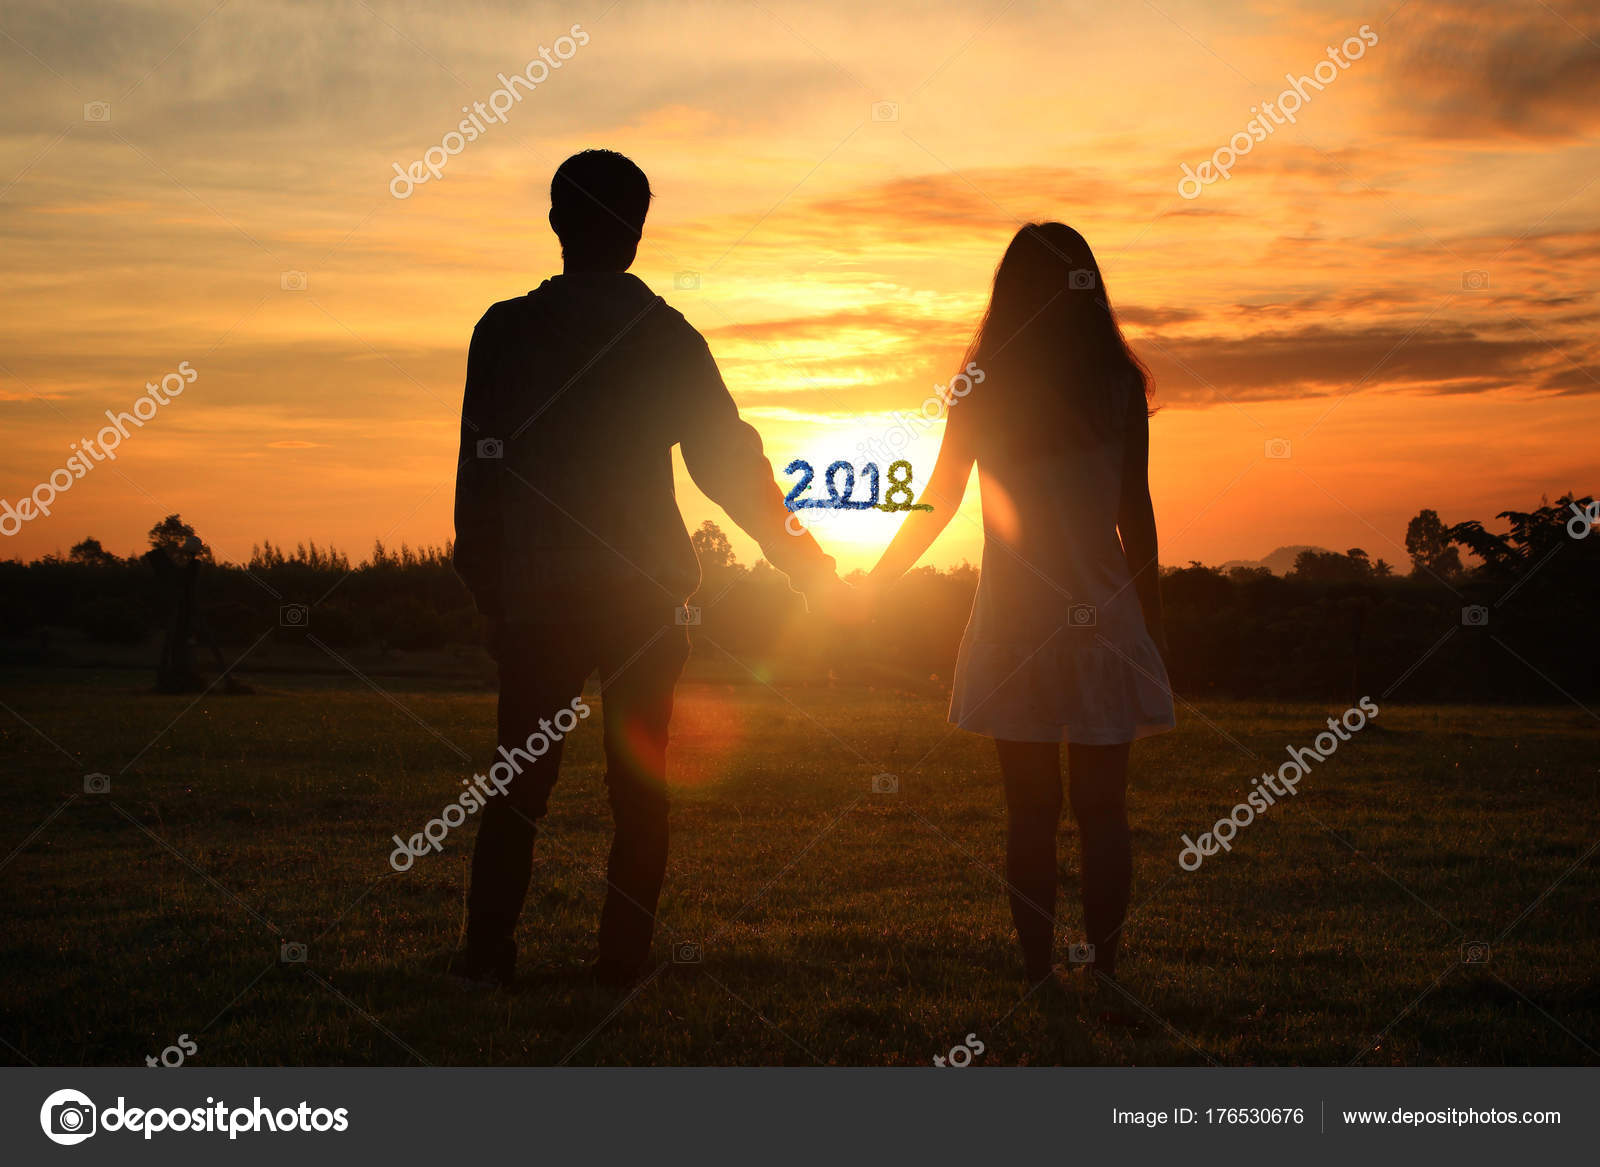 happy new year 2018 shadow image of couples holding hands with stock photo